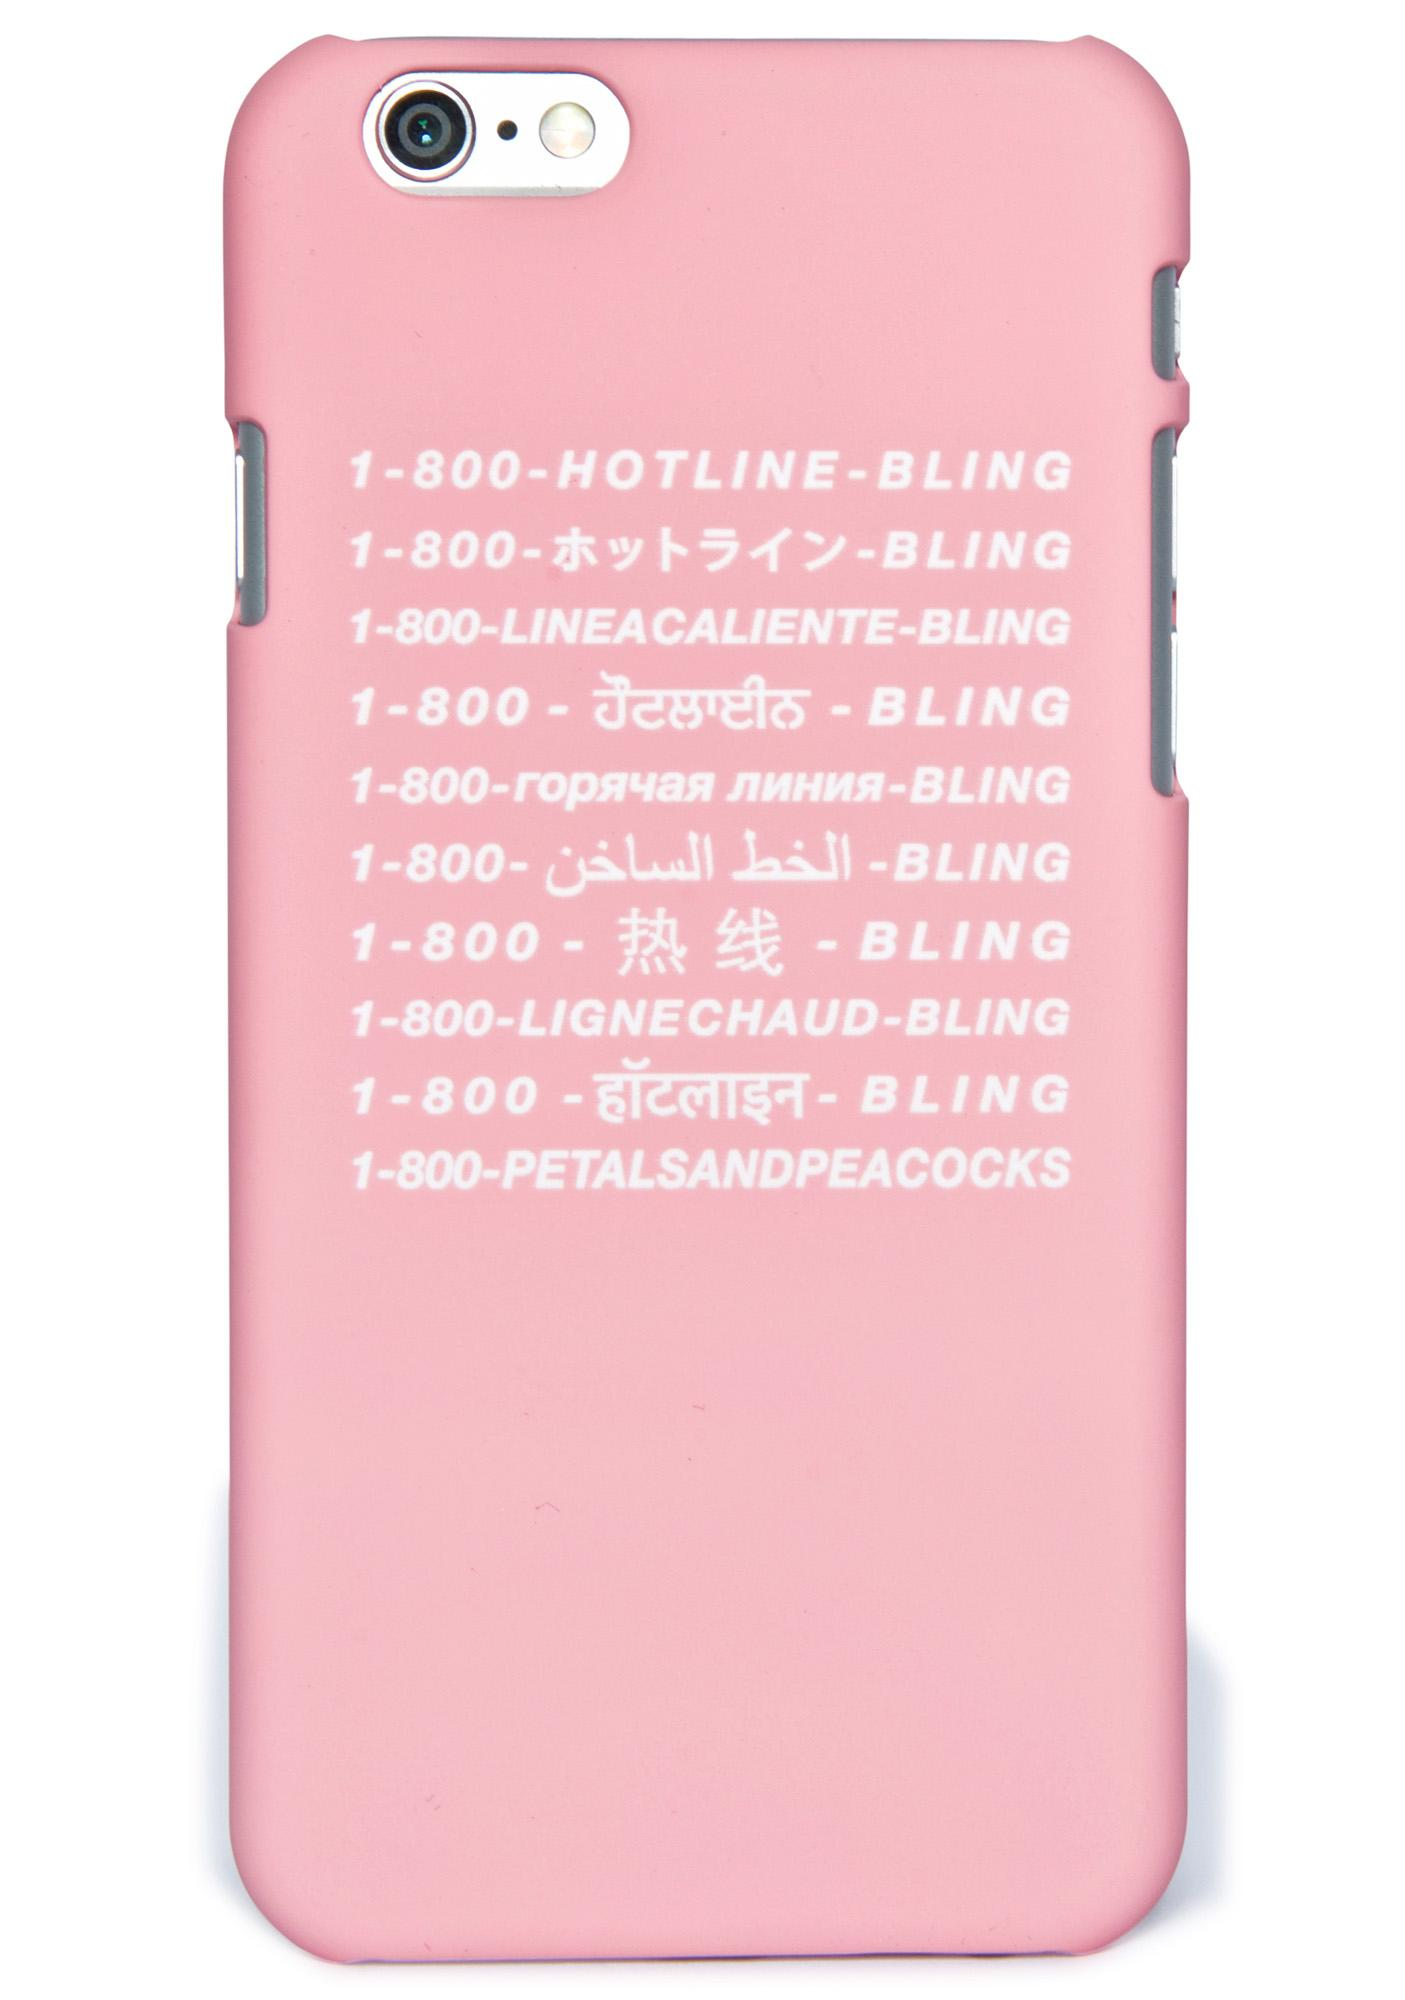 Petals and Peacocks Int'l Hotline iPhone 6 Case